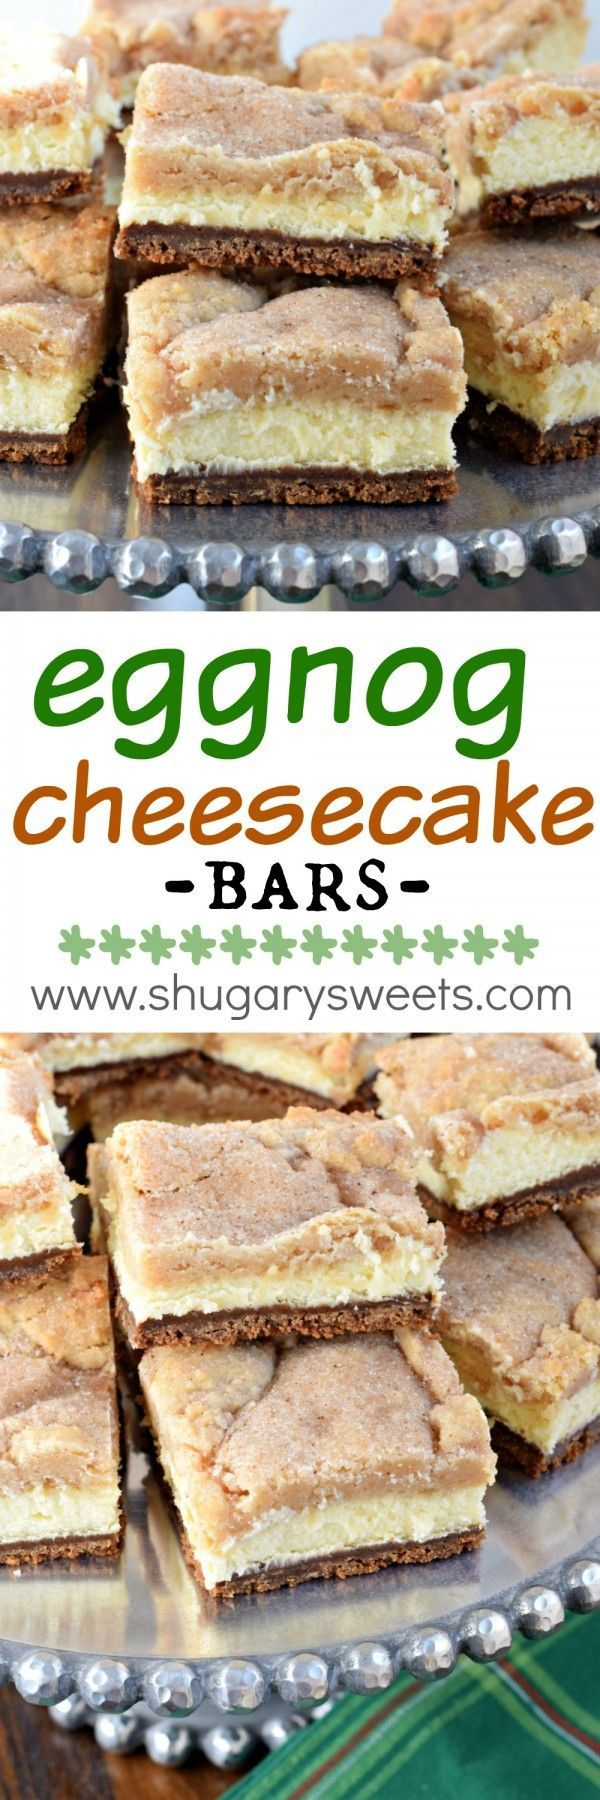 Layered Eggnog Cheesecake bars with a gingersnap crust, creamy cheesecake filling and snickerdoodle cookie topping! This is the ultimate dessert recipe, and it's easy enough to make!: